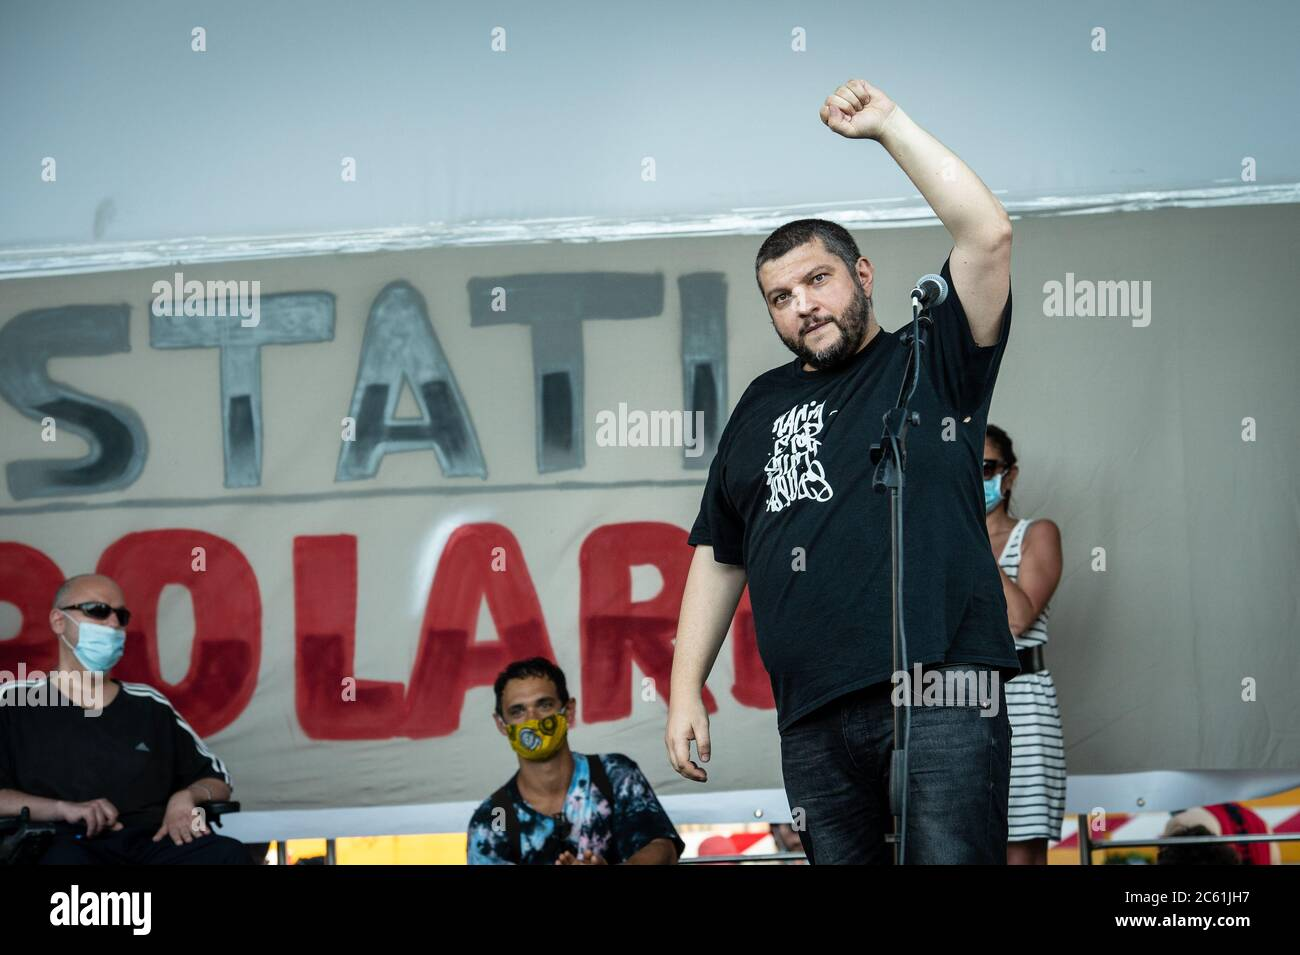 """Italian rapper Kento, at """"Stati Popolari"""", event organized in Piazza San Giovanni, in Rome, Italy, by Aboubakar Soumahoro, Italian-Ivorian trade unionist of the Agricultural Coordination of the Union of Base Union (USB) Stock Photo"""